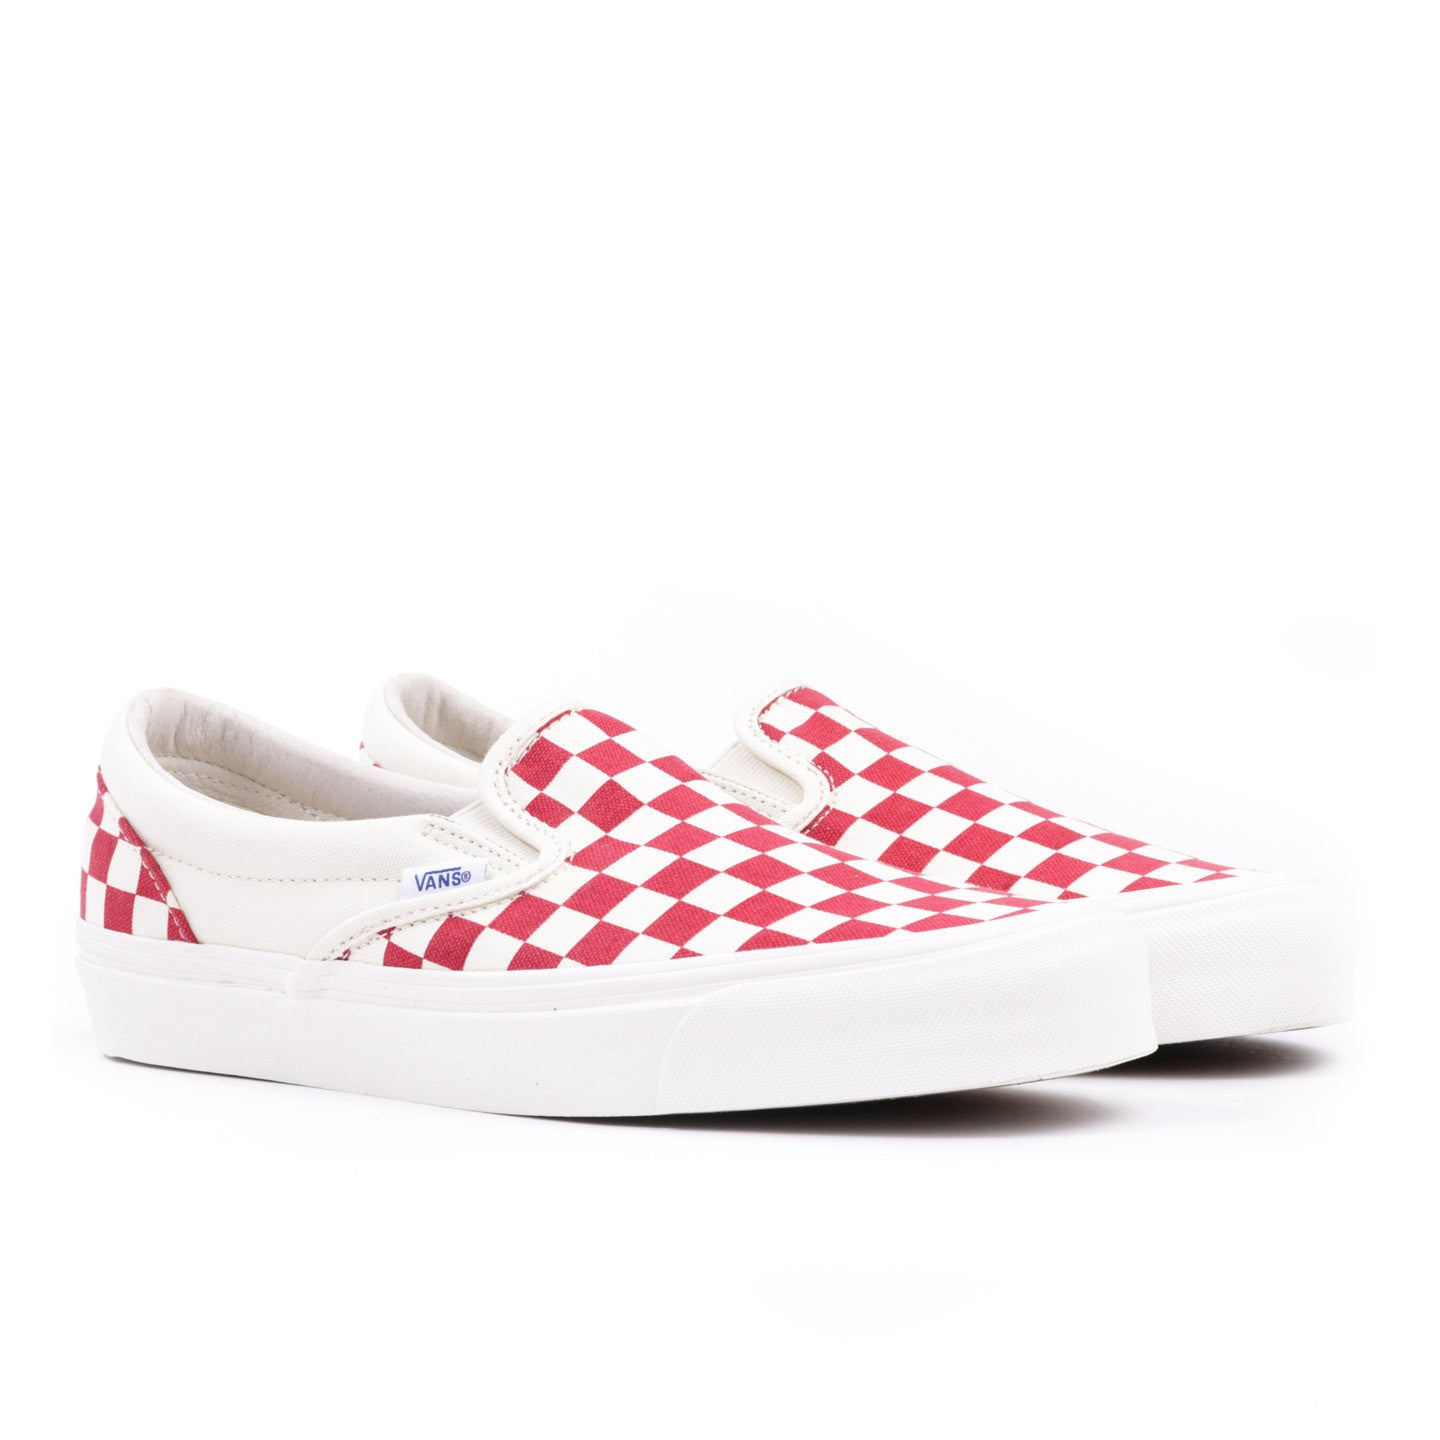 9030377fa14e VAULT BY VANS OG CLASSIC SLIP-ON LX RED CHECKERBOARD CANVAS